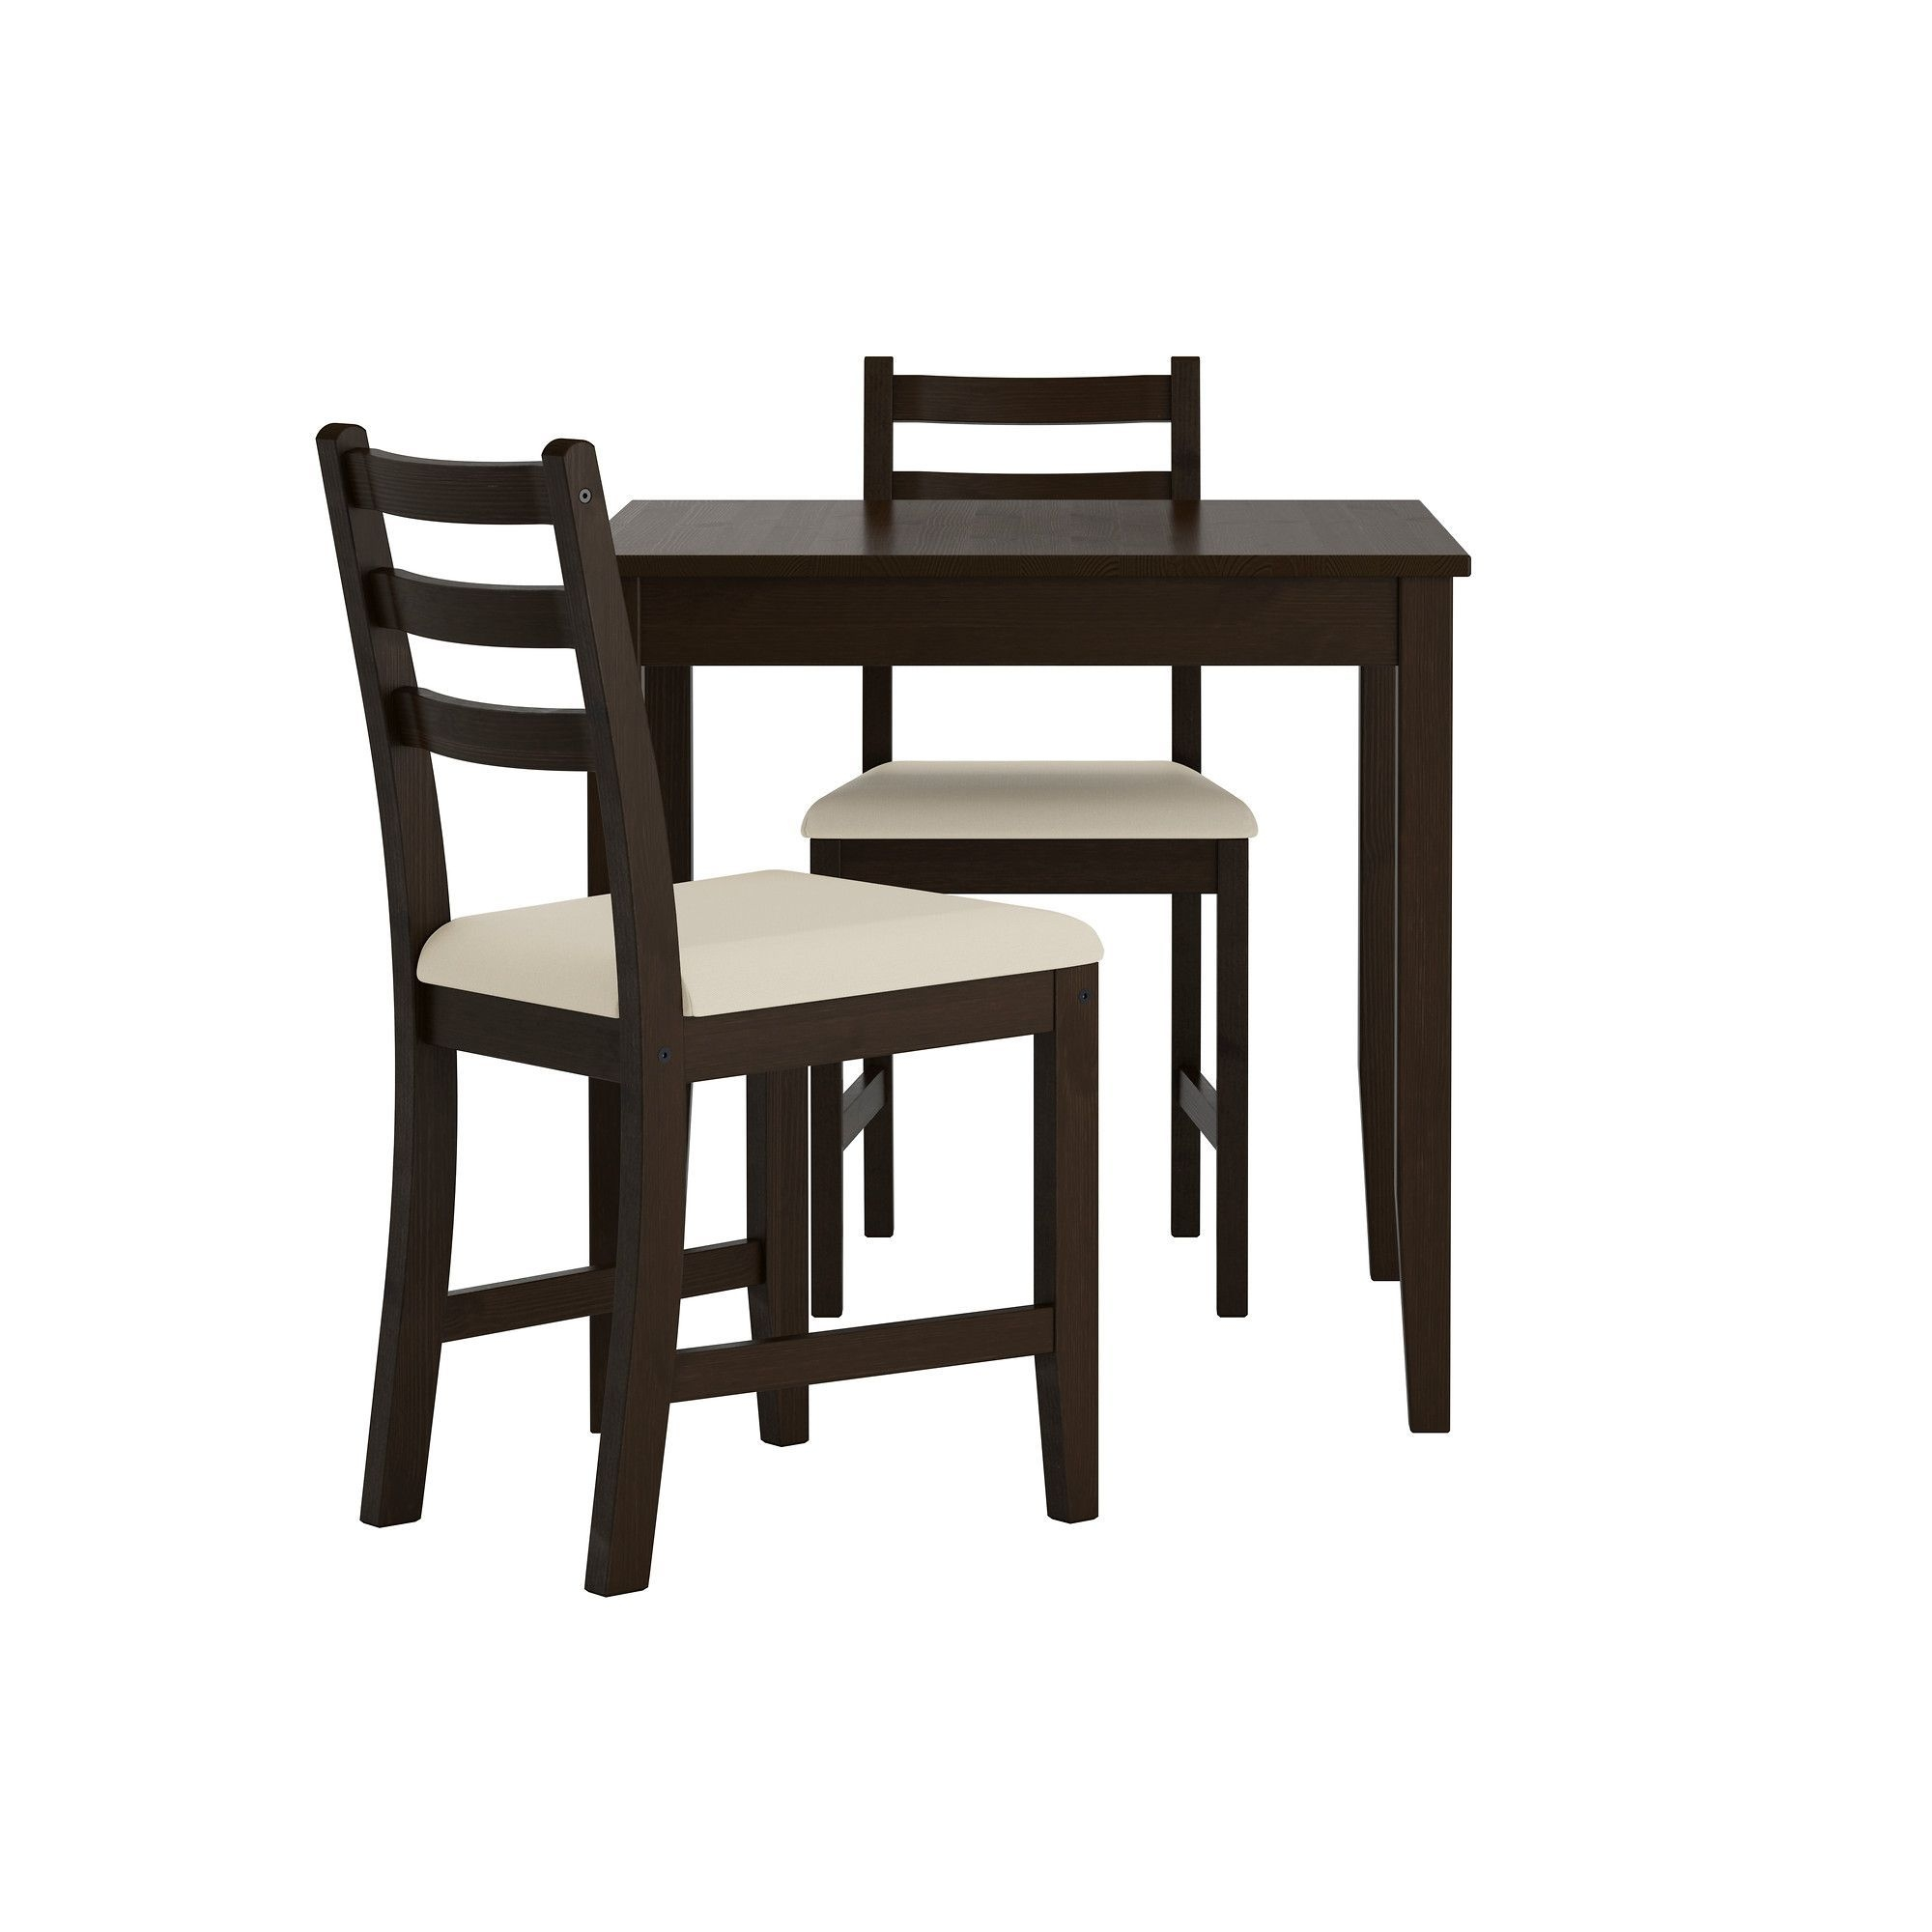 Us  Furniture And Home Furnishings  Ikea Dining Sets Ikea Dining Table Dining Room Table Chairs